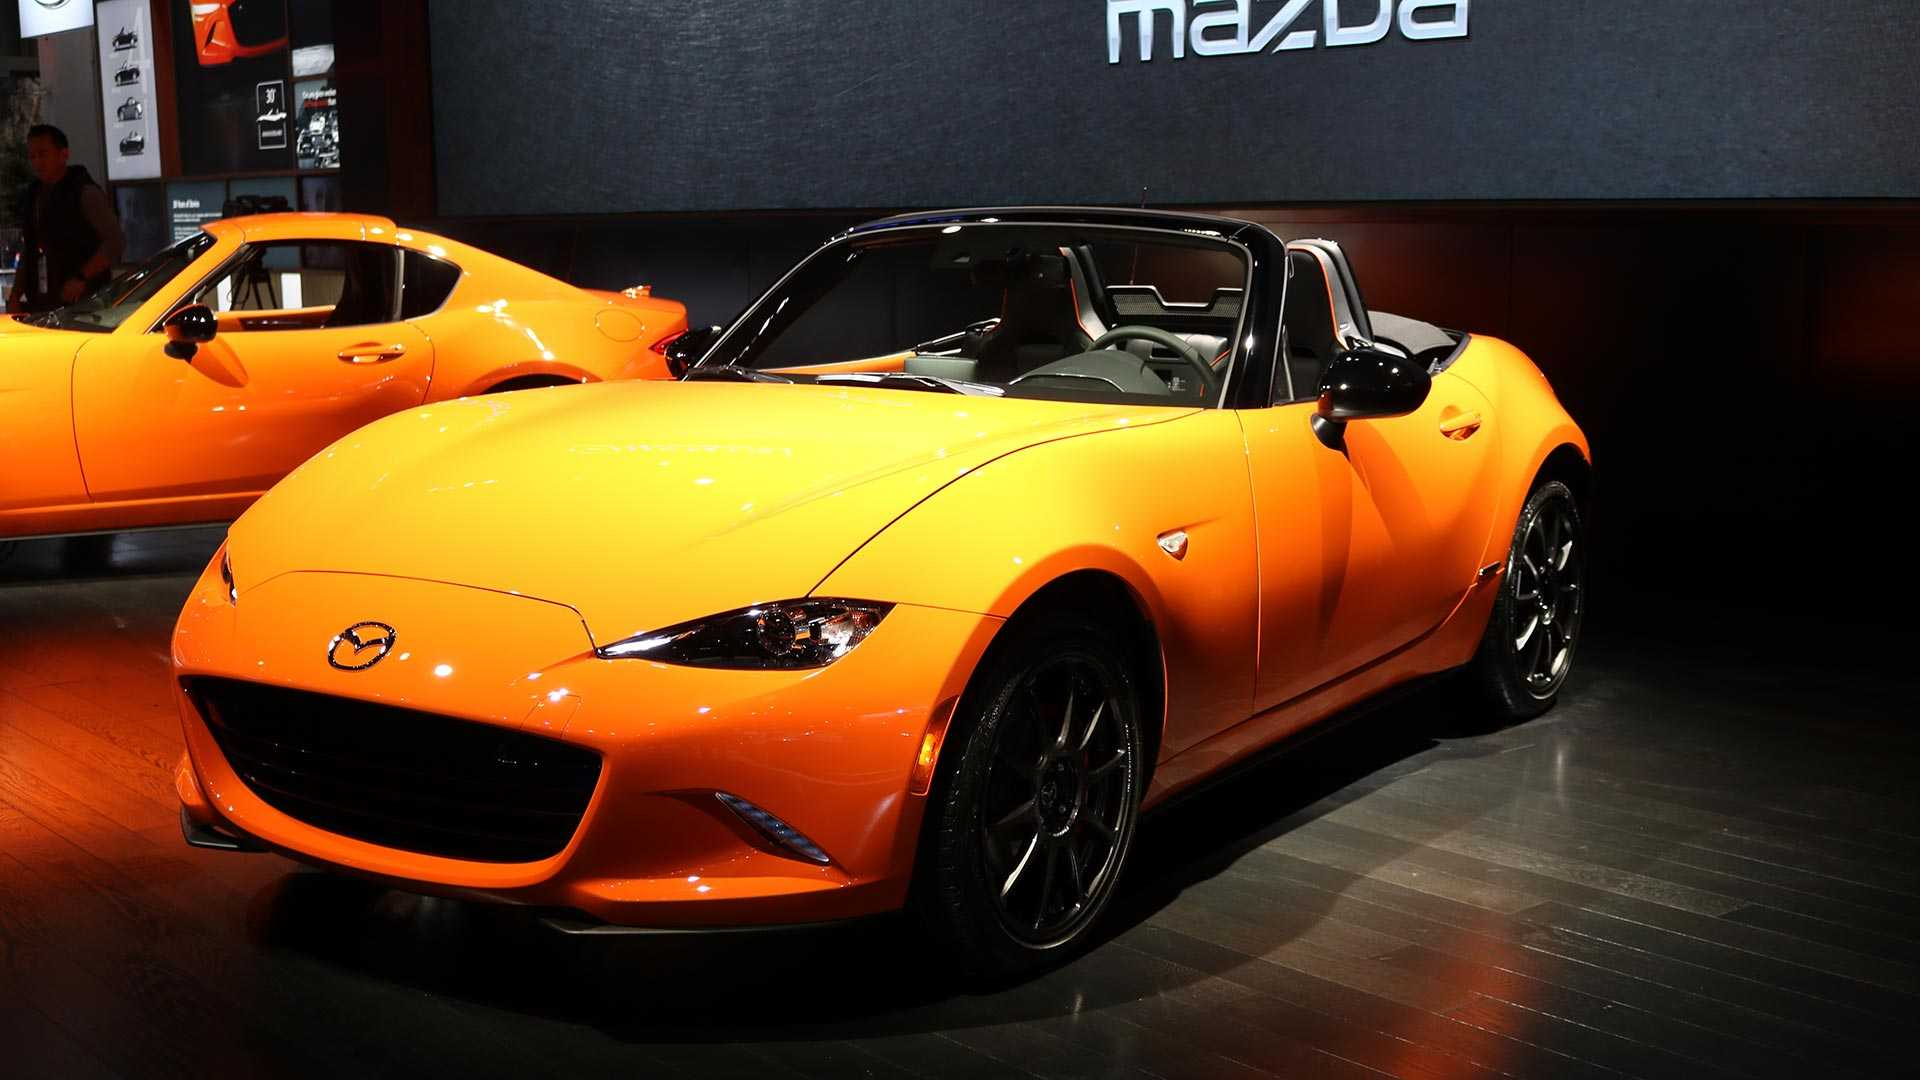 Mazda MX-5 Miata 30th Anniversary Models Begin to Arrive - Brand Spur